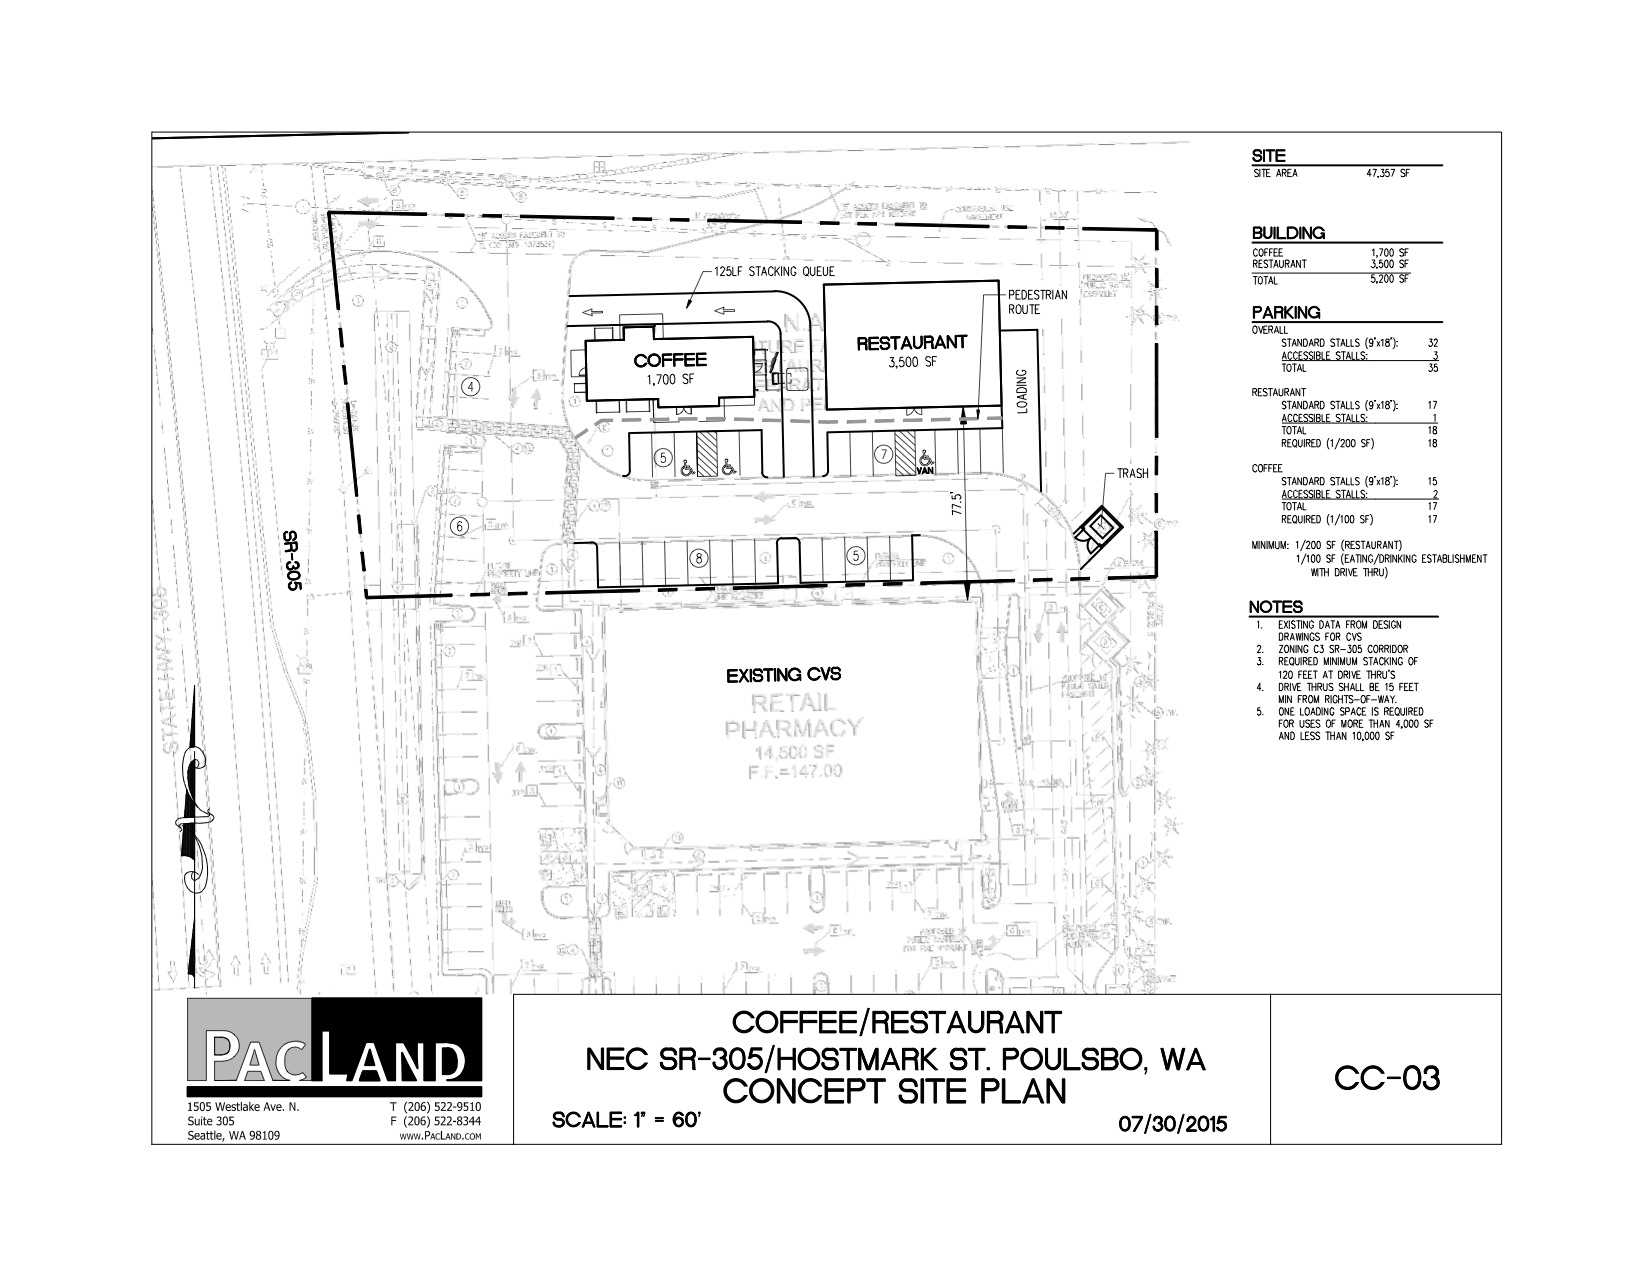 Restaurant, coffee shop proposed next to Poulsbo CVS | Minding Your ...